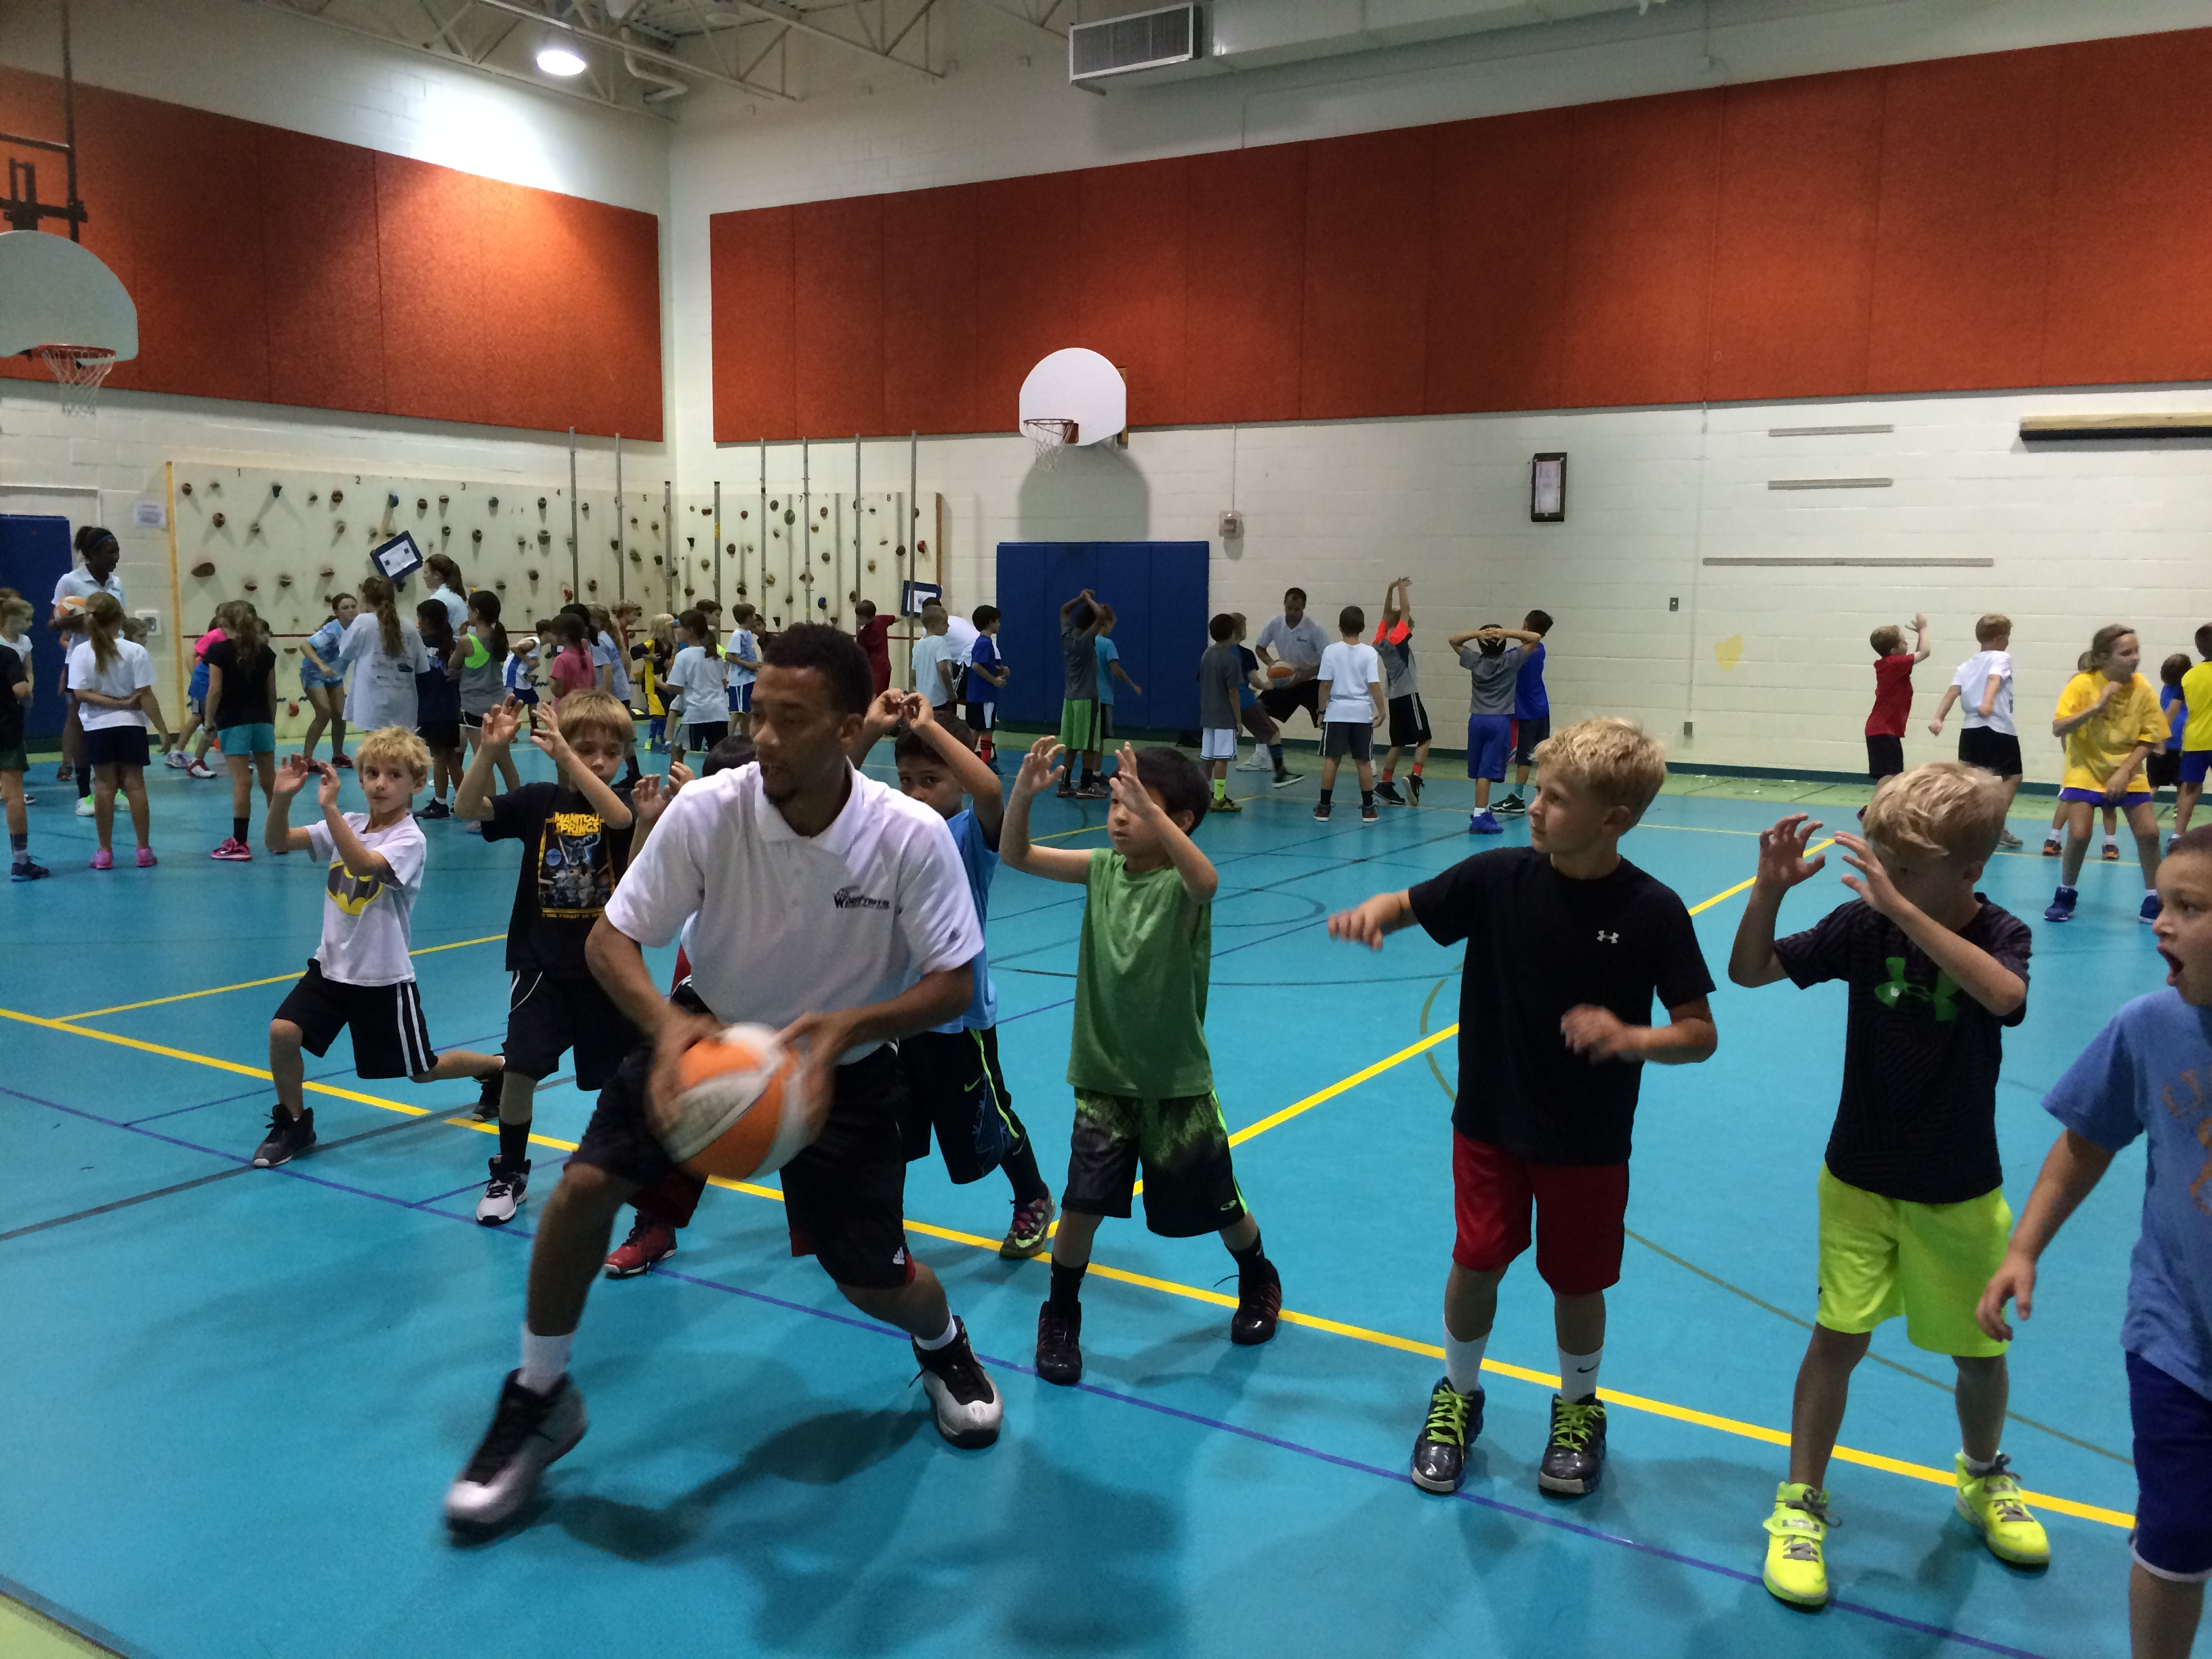 Summer Program - Basketball | Coach Wootten's Basketball Camp: Day Camp for Boys and Girls